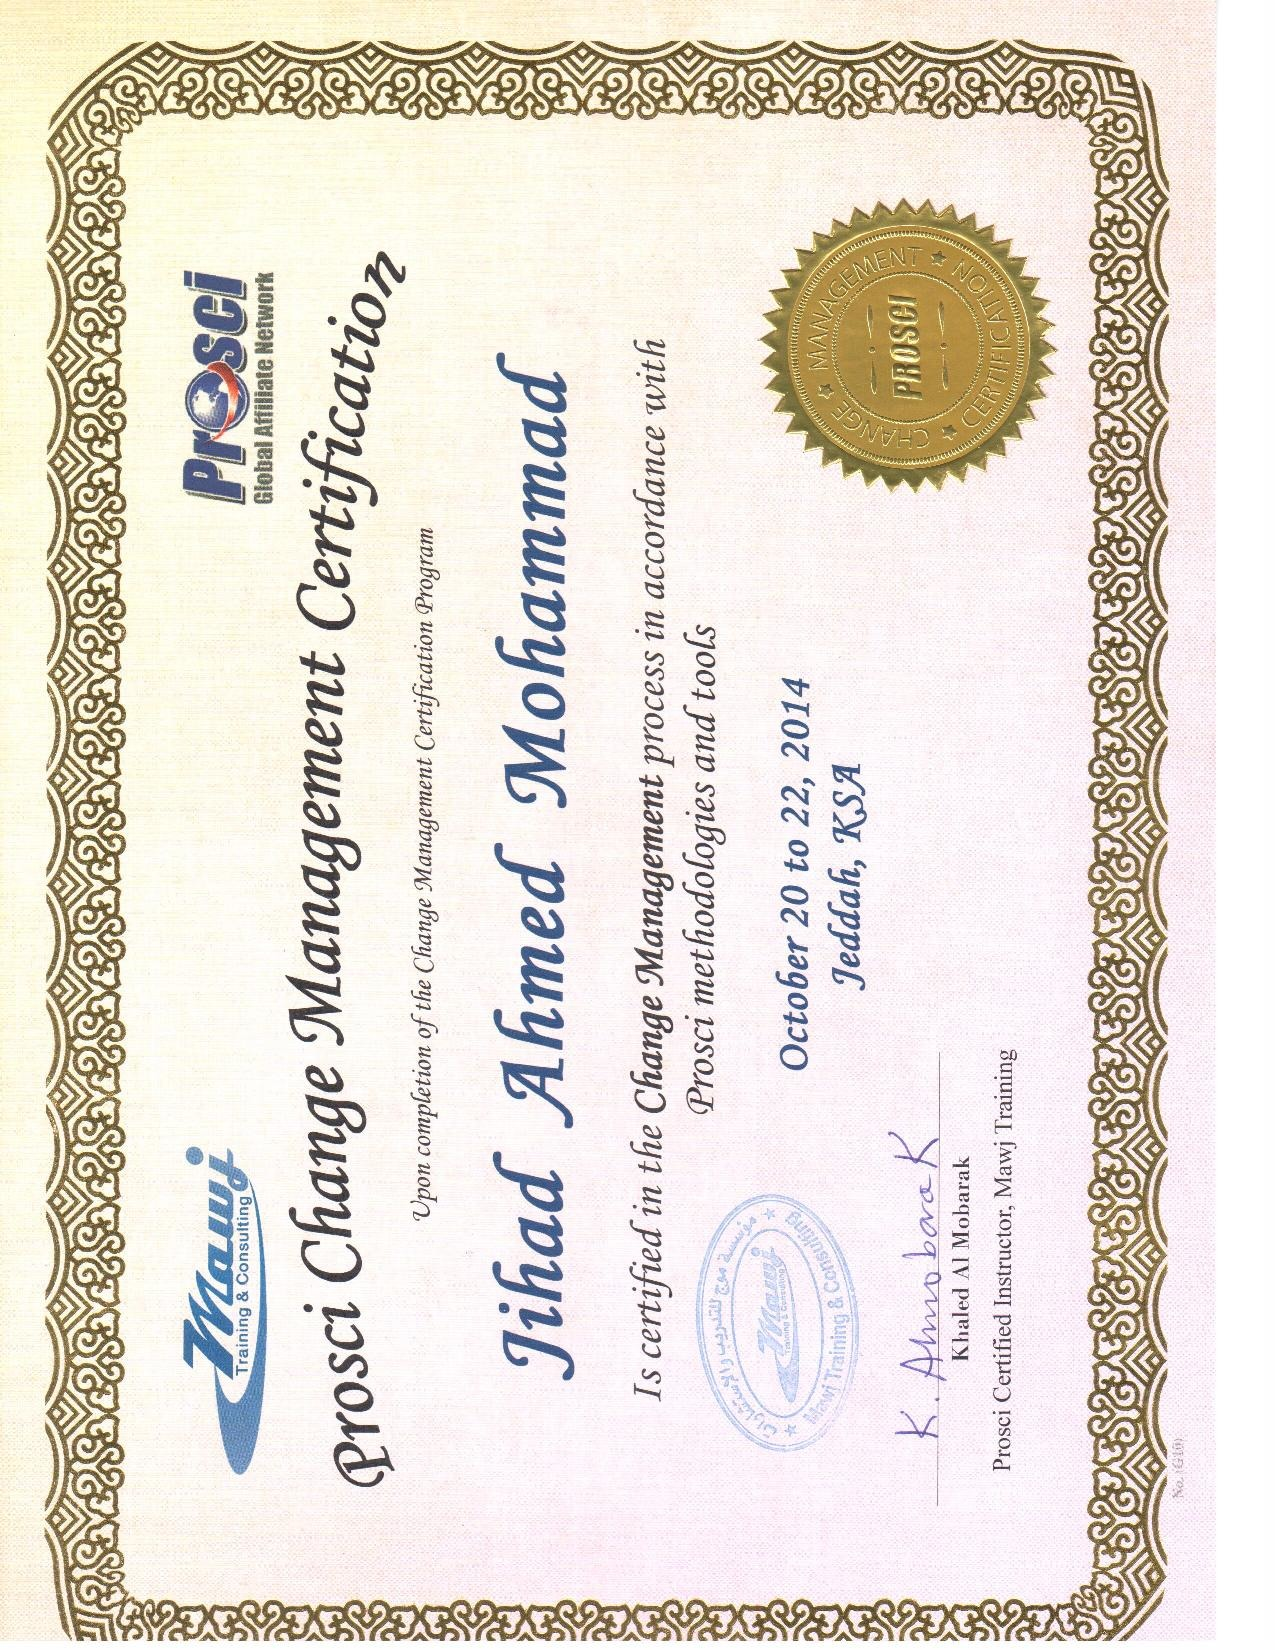 Jihad mohammad mba spp sphrishrm scp odcp cmc pmp bayt change management certification cmc certificate 1betcityfo Images